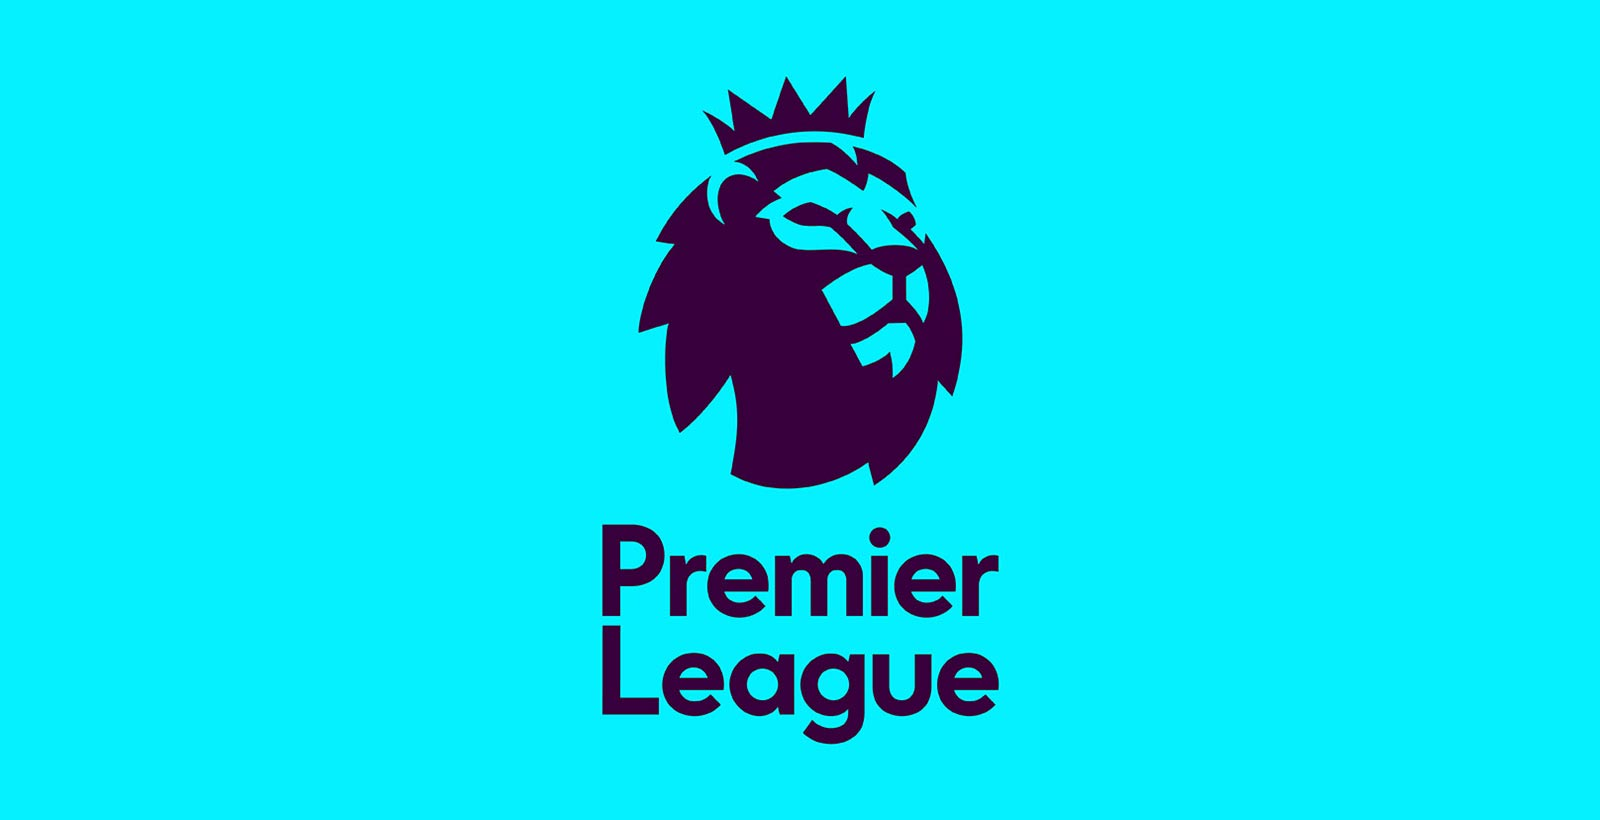 All-New Premier League Logo Unveiled - Sleeve Patch Revealed - Footy ...